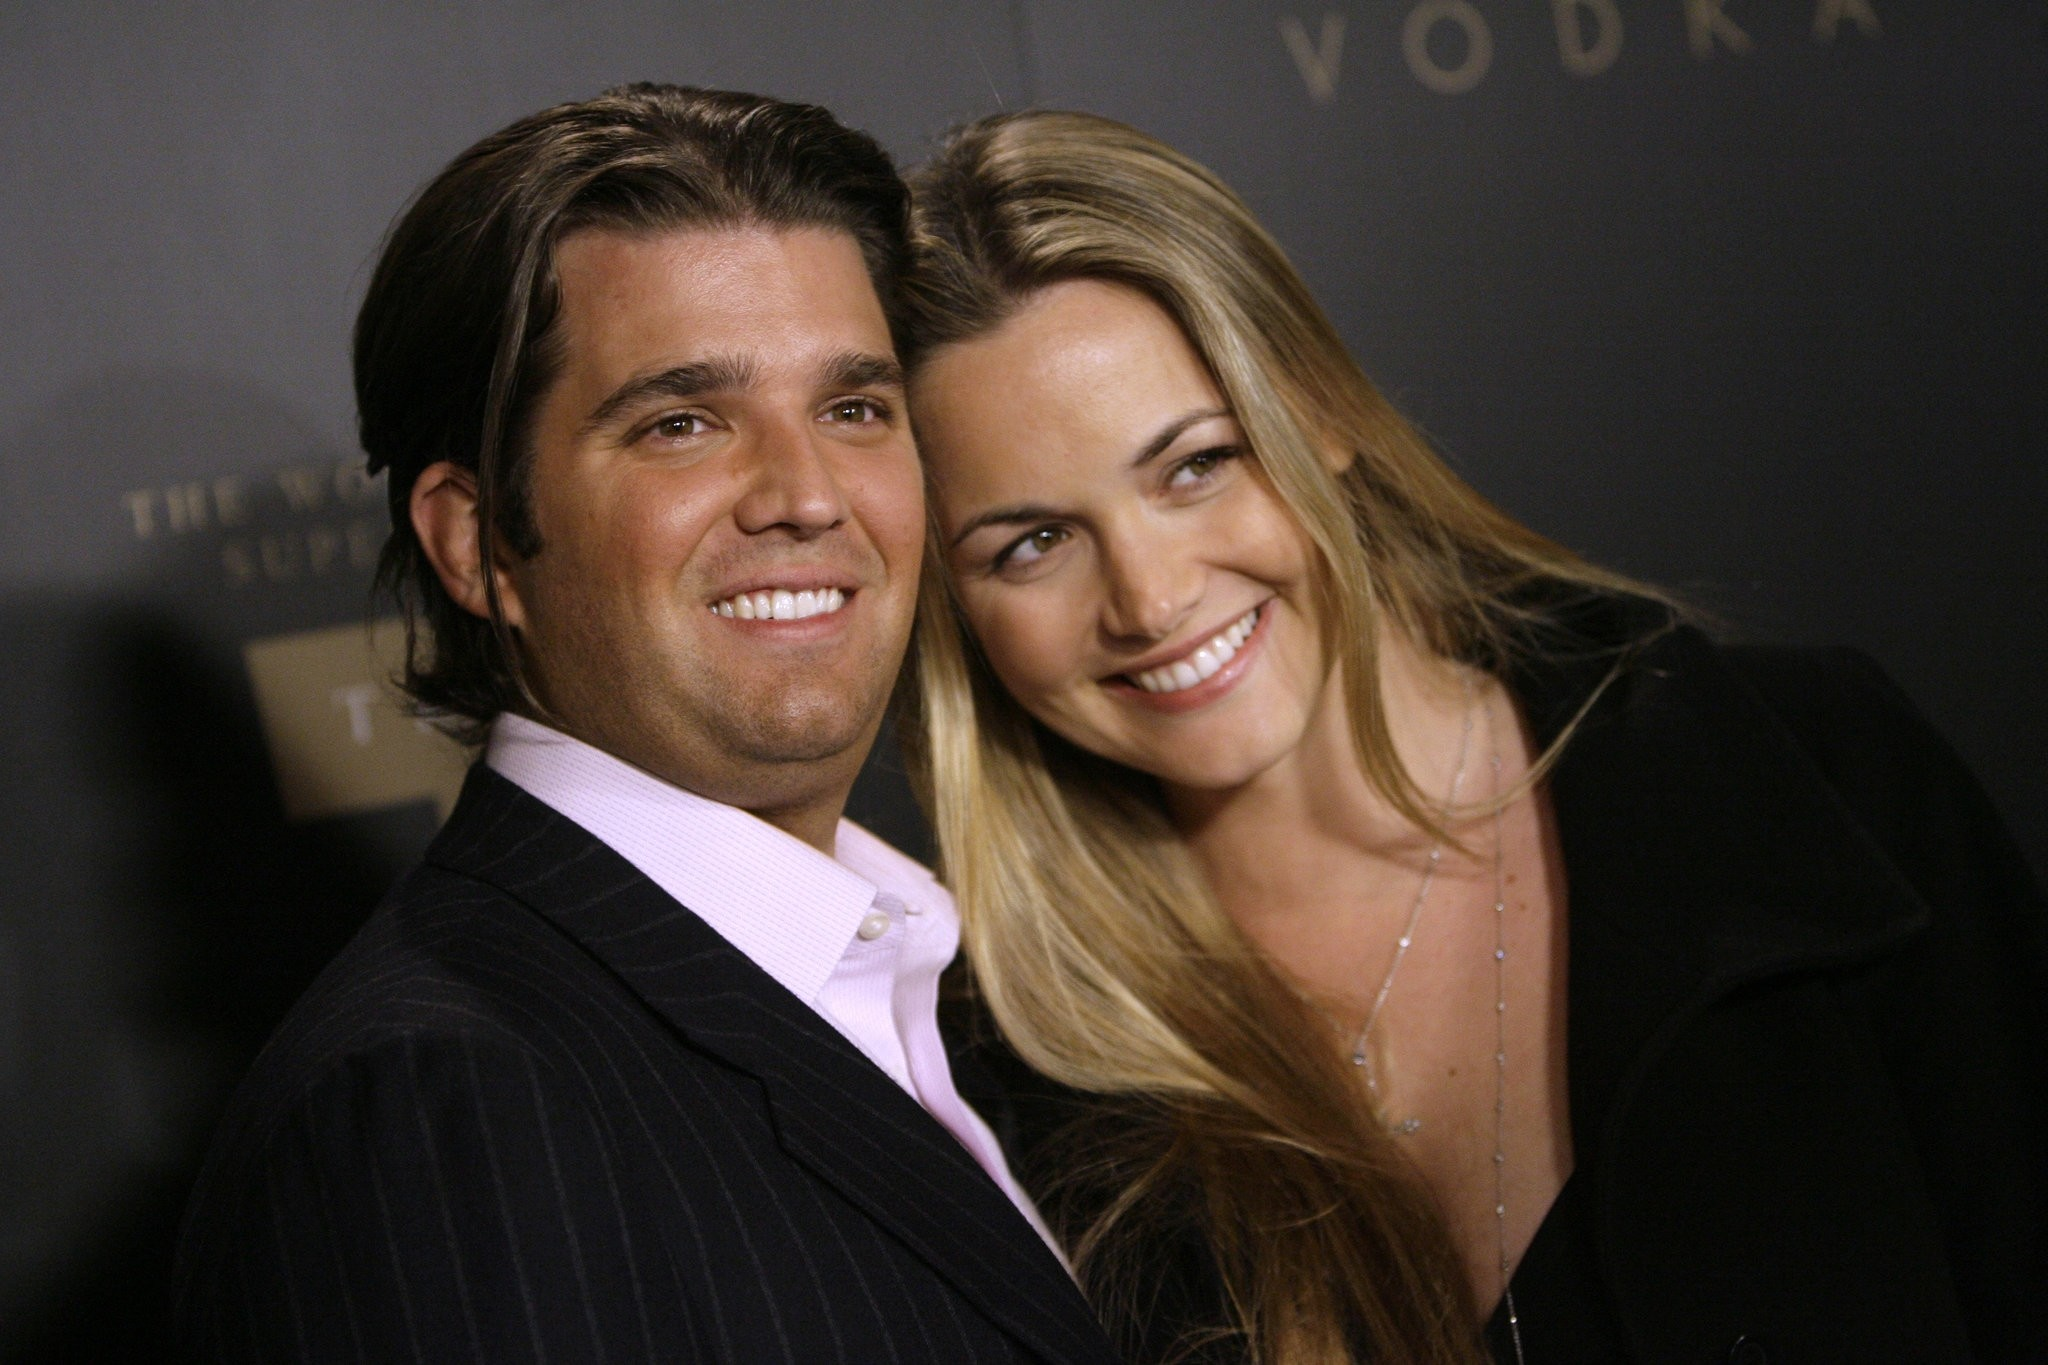 In a Jan. 17, 2007 file photo, Donald Trump Jr., left, and his wife Vanessa arrive for the Trump Vodka launch party by Drinks America hosted by Donald J. Trump at Les Deux in the Hollywood section of Los Angeles. (AP Photo)